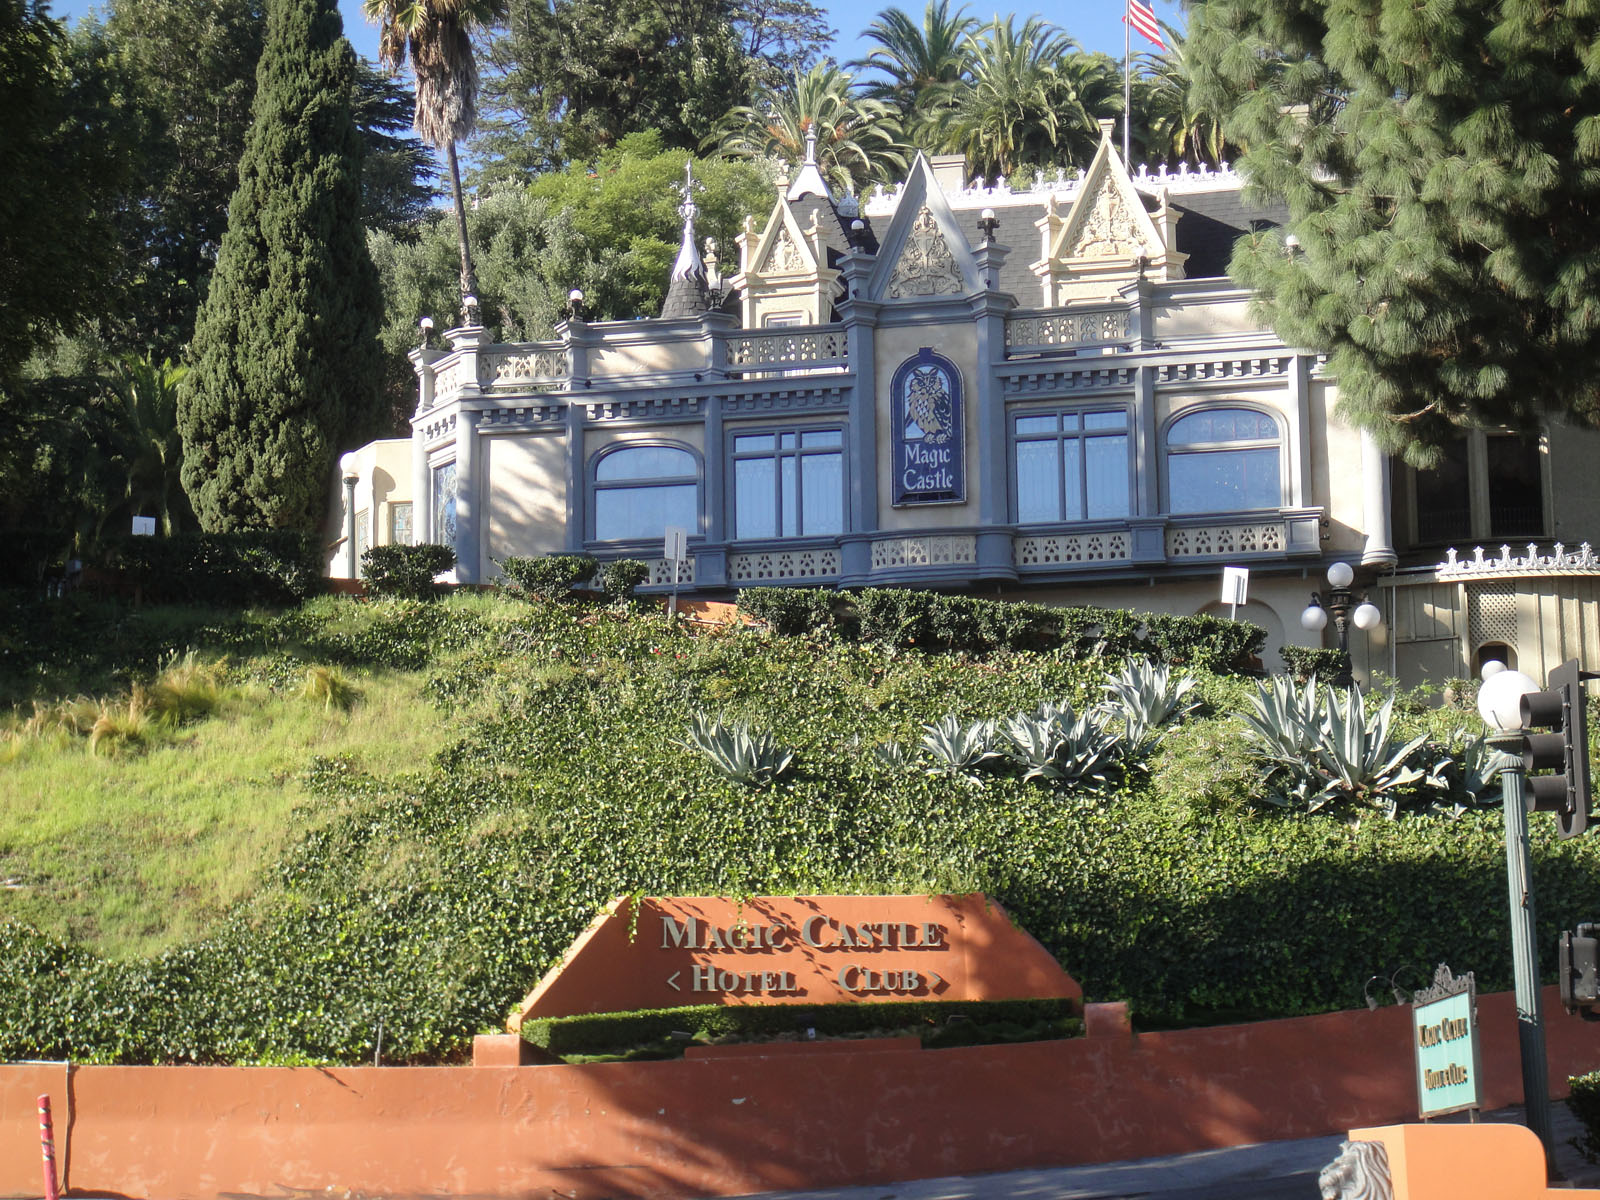 FileThe Magic Castle In Hollywood 6244896017